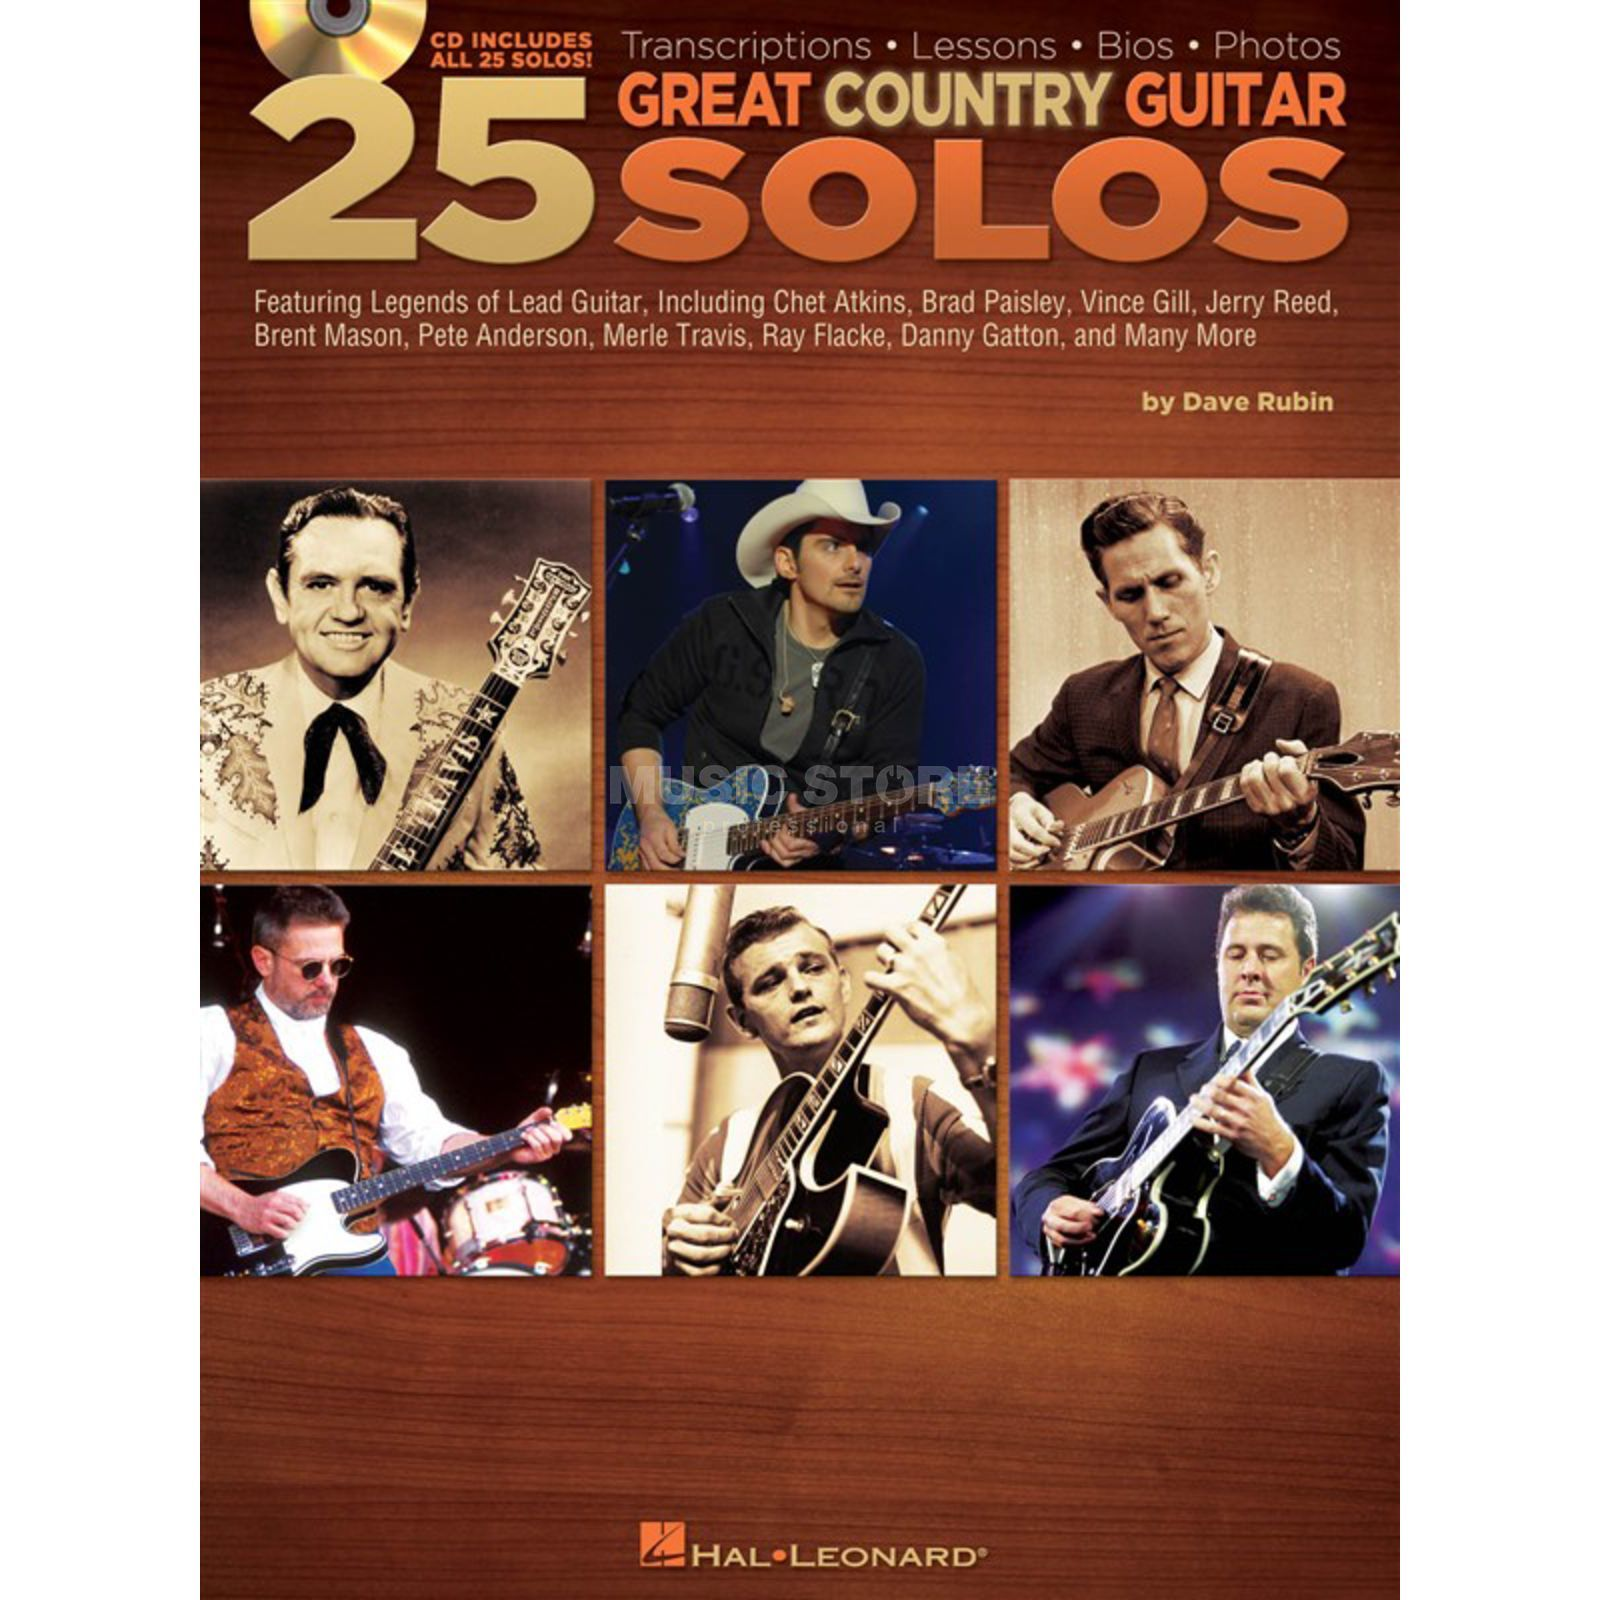 Hal Leonard Dave Rubin: 25 Great Country Guitar Solos Product Image